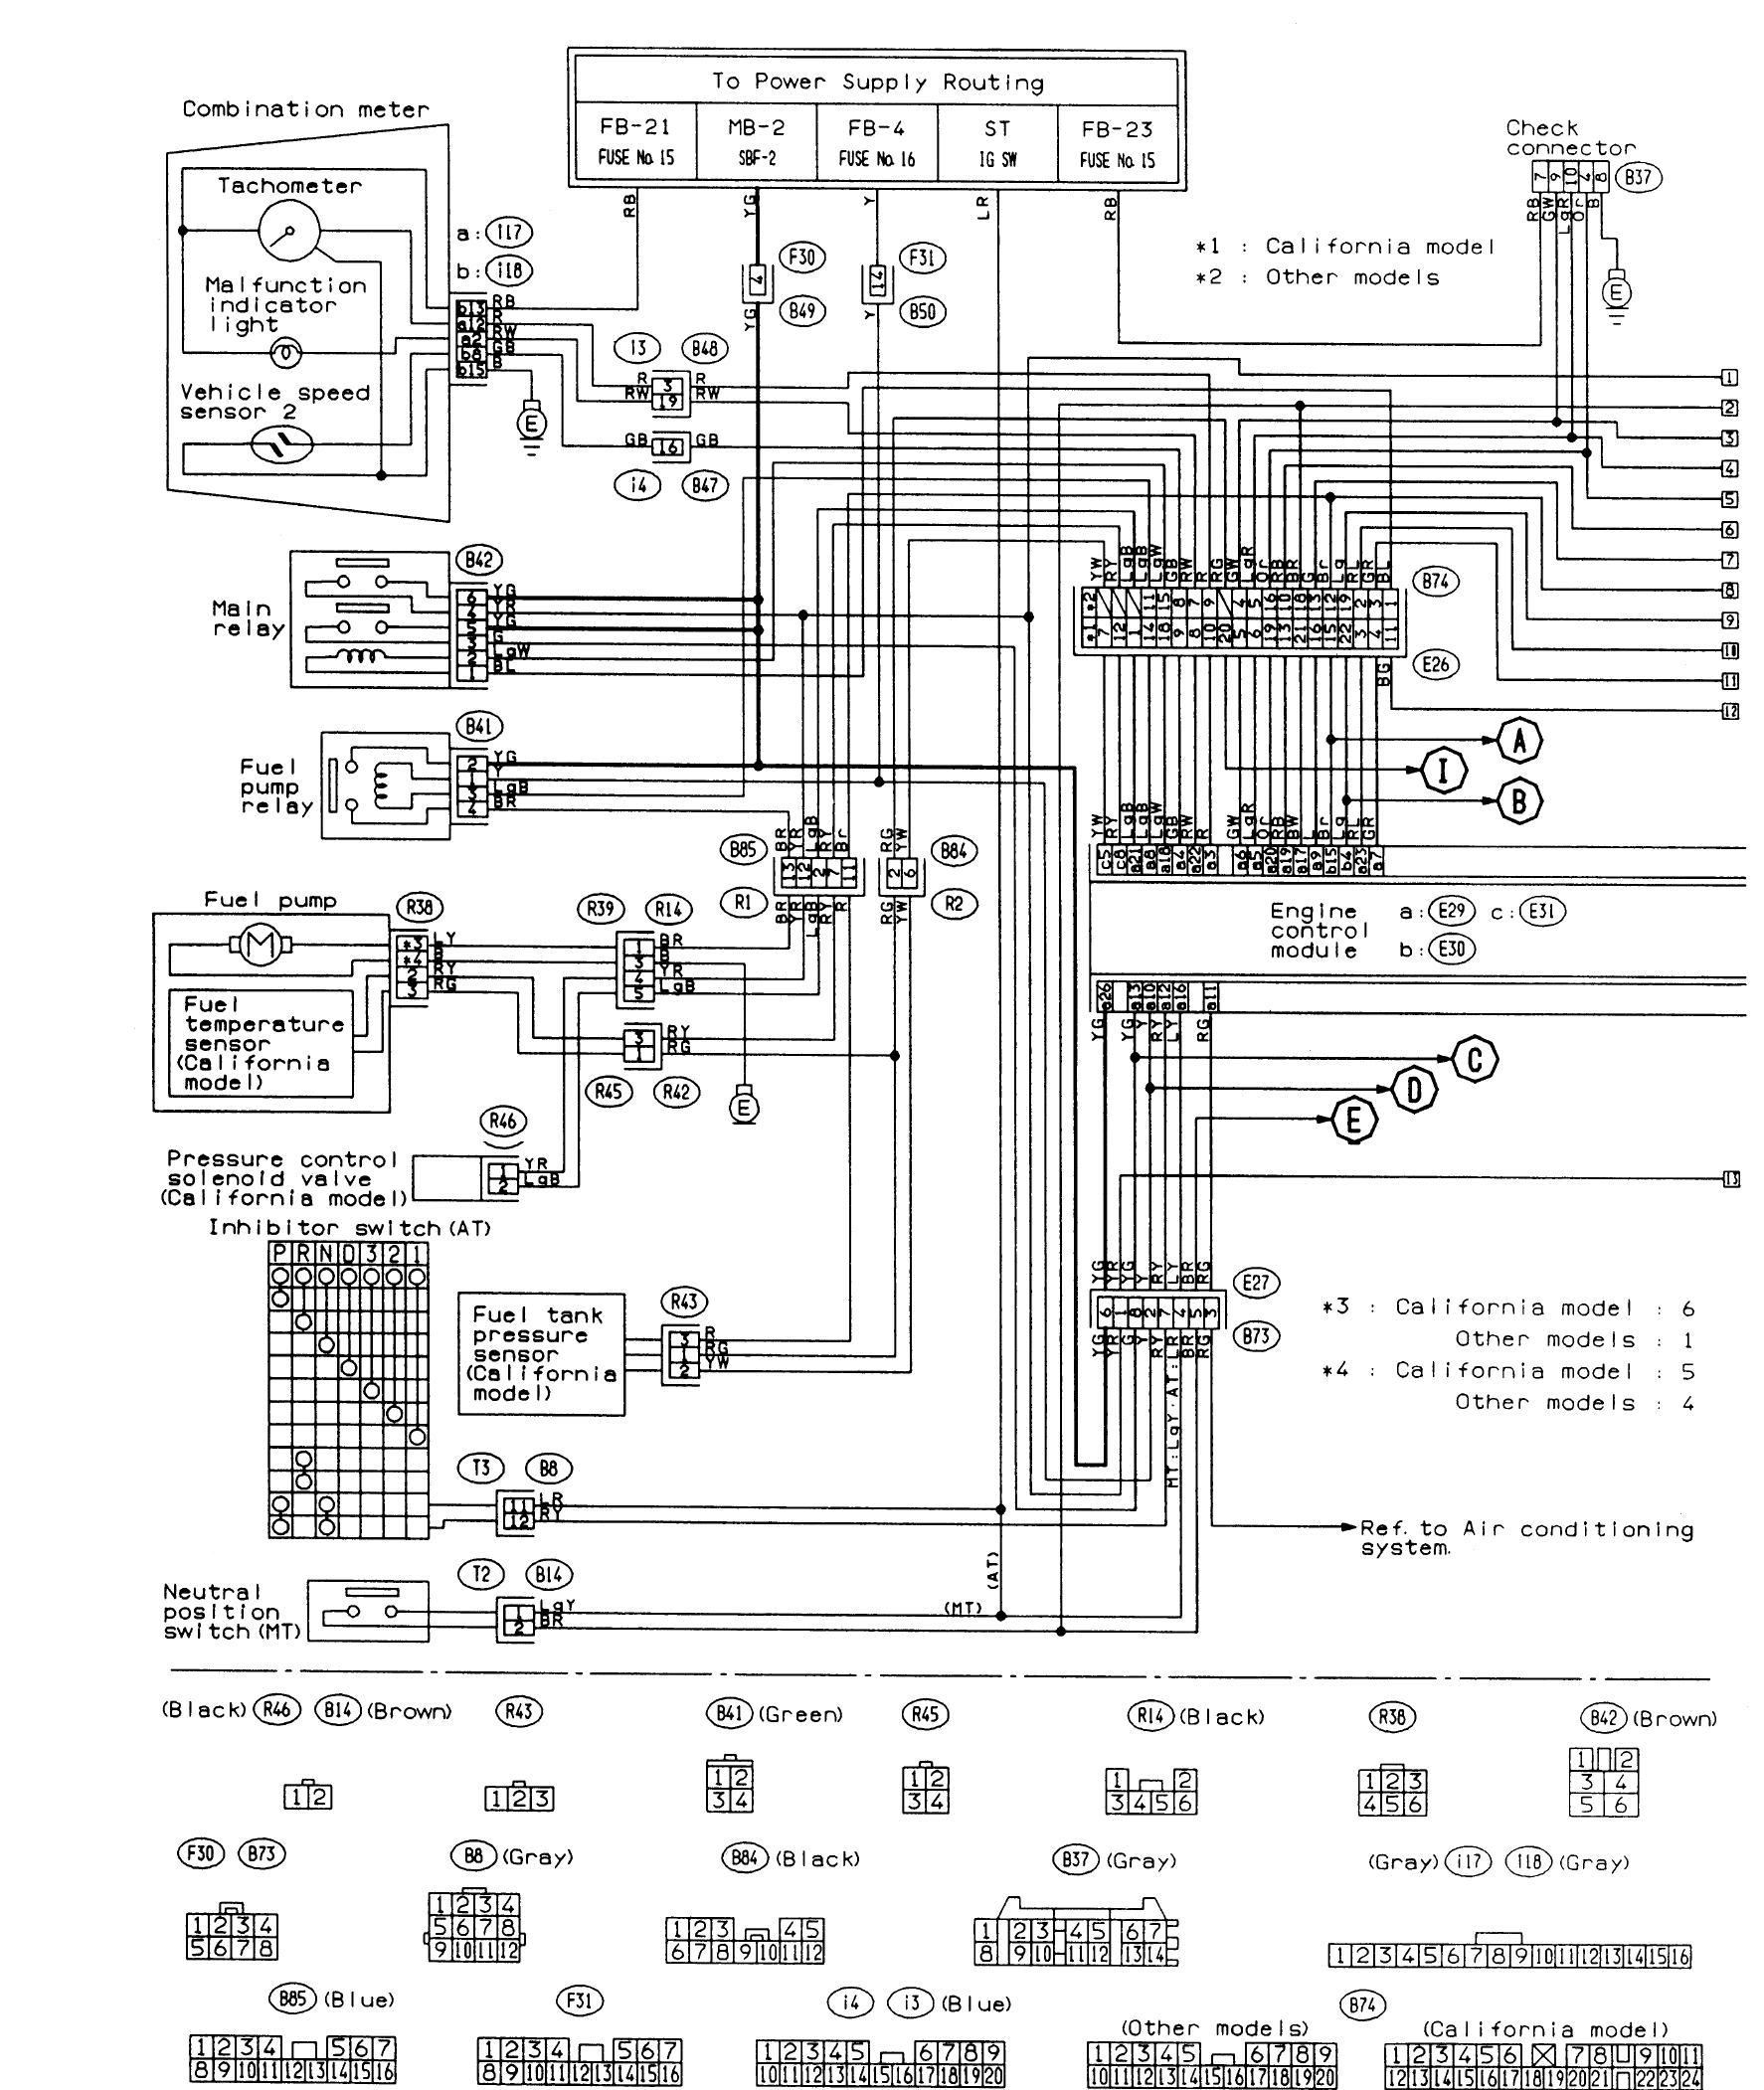 subaru ecu wiring diagram FUSlrCX 1999 subaru legacy wiring diagram 1994 subaru legacy wiring 2000 Subaru Legacy Limited at bakdesigns.co